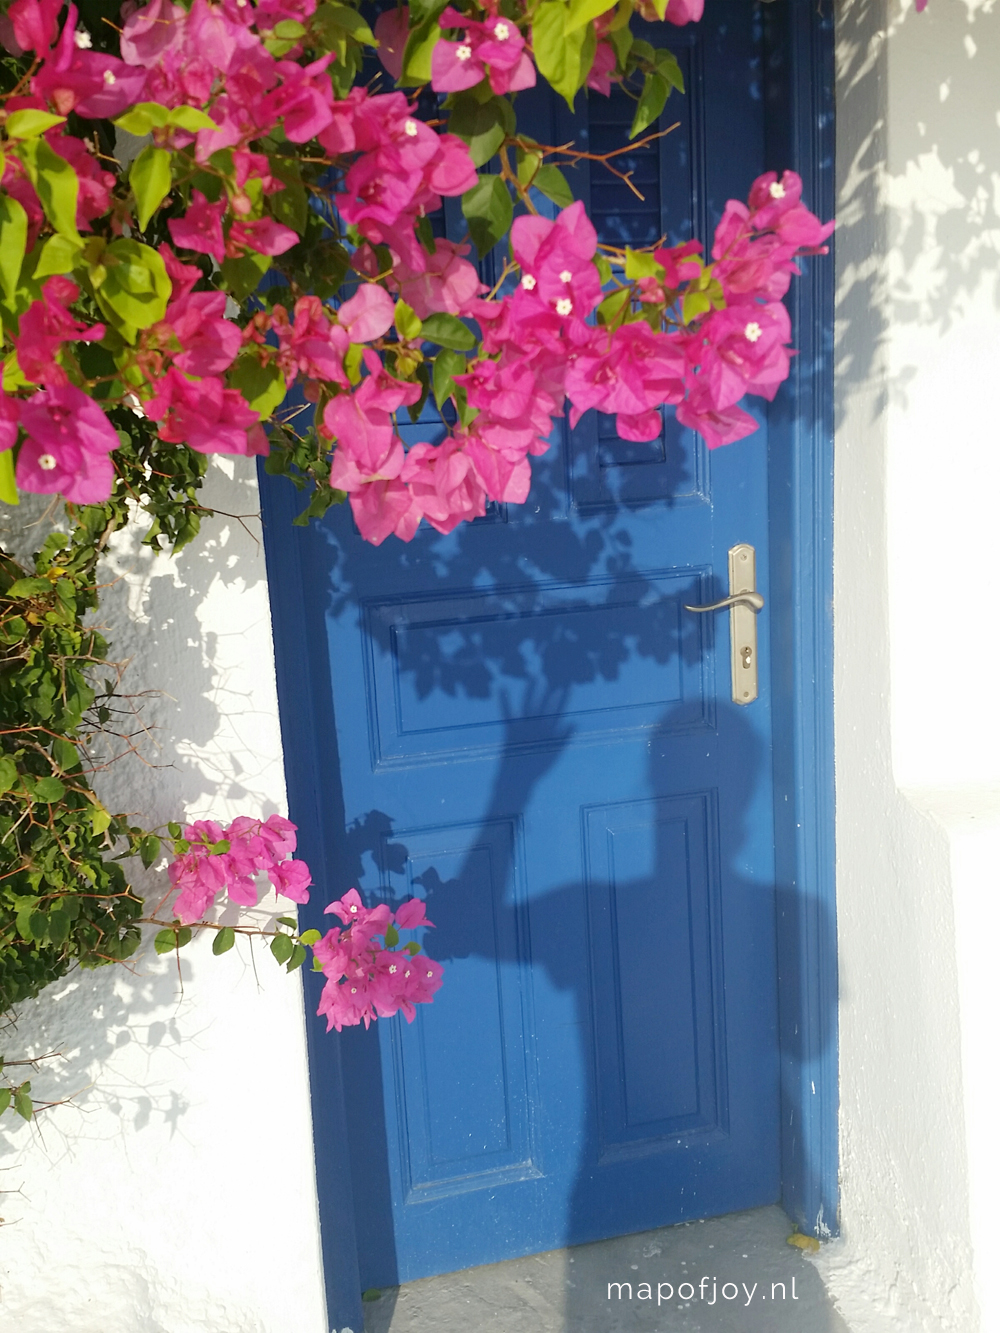 Santorini Greece, bougainville - Map of Joy